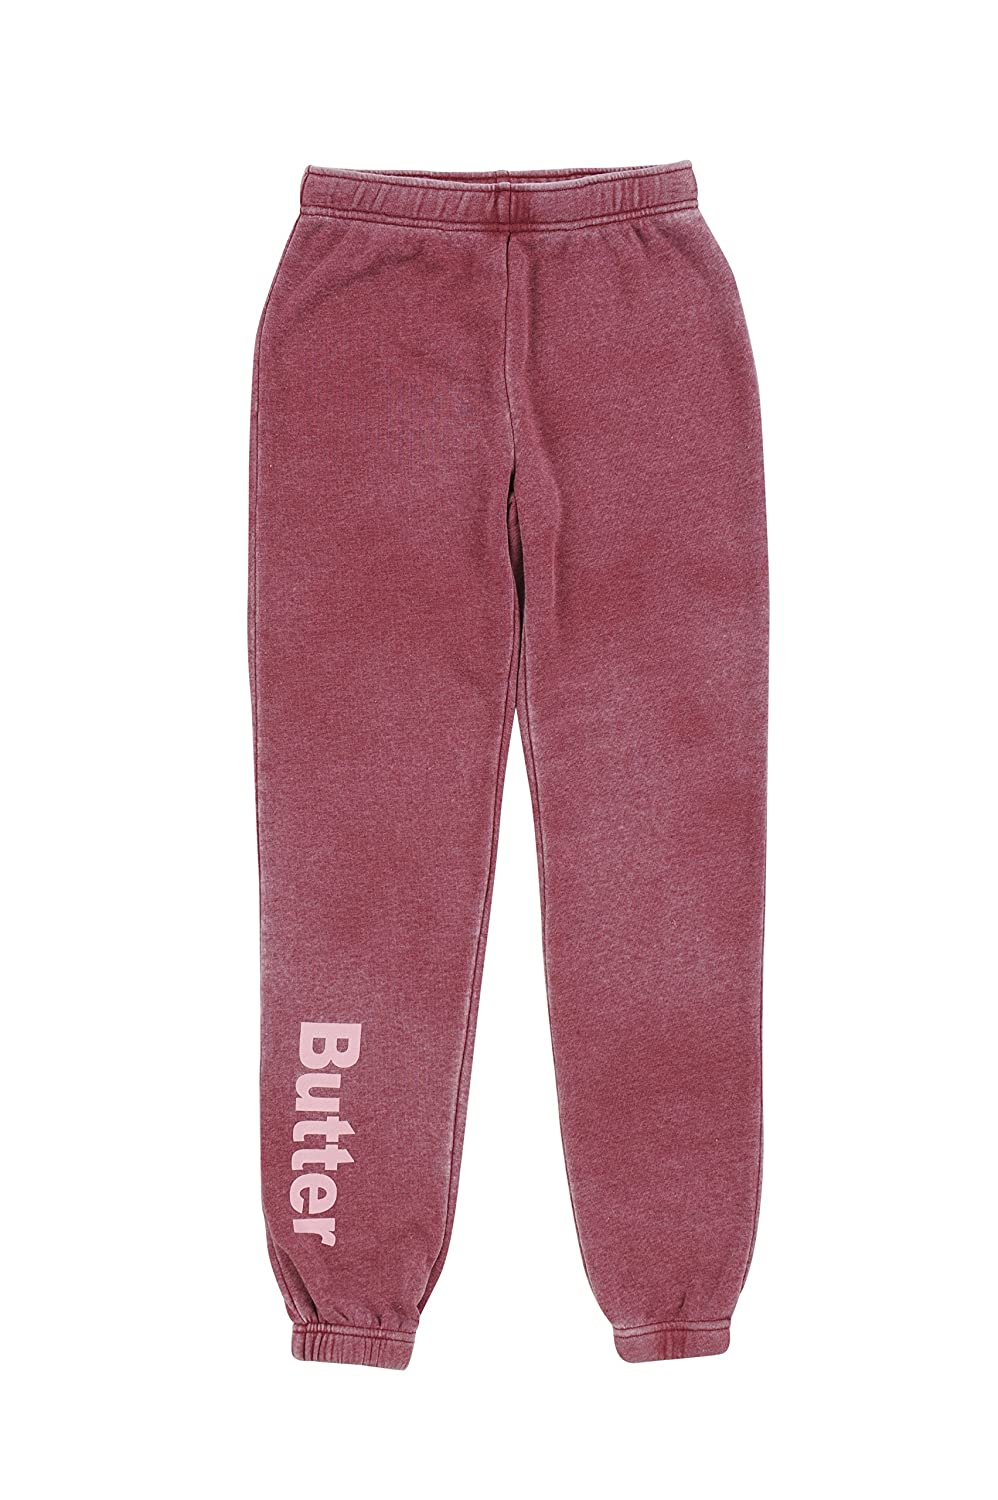 BUTTER SUPER SOFT Girl's Fleece Jogger Sweatpants Elastic Waist and Cuffs